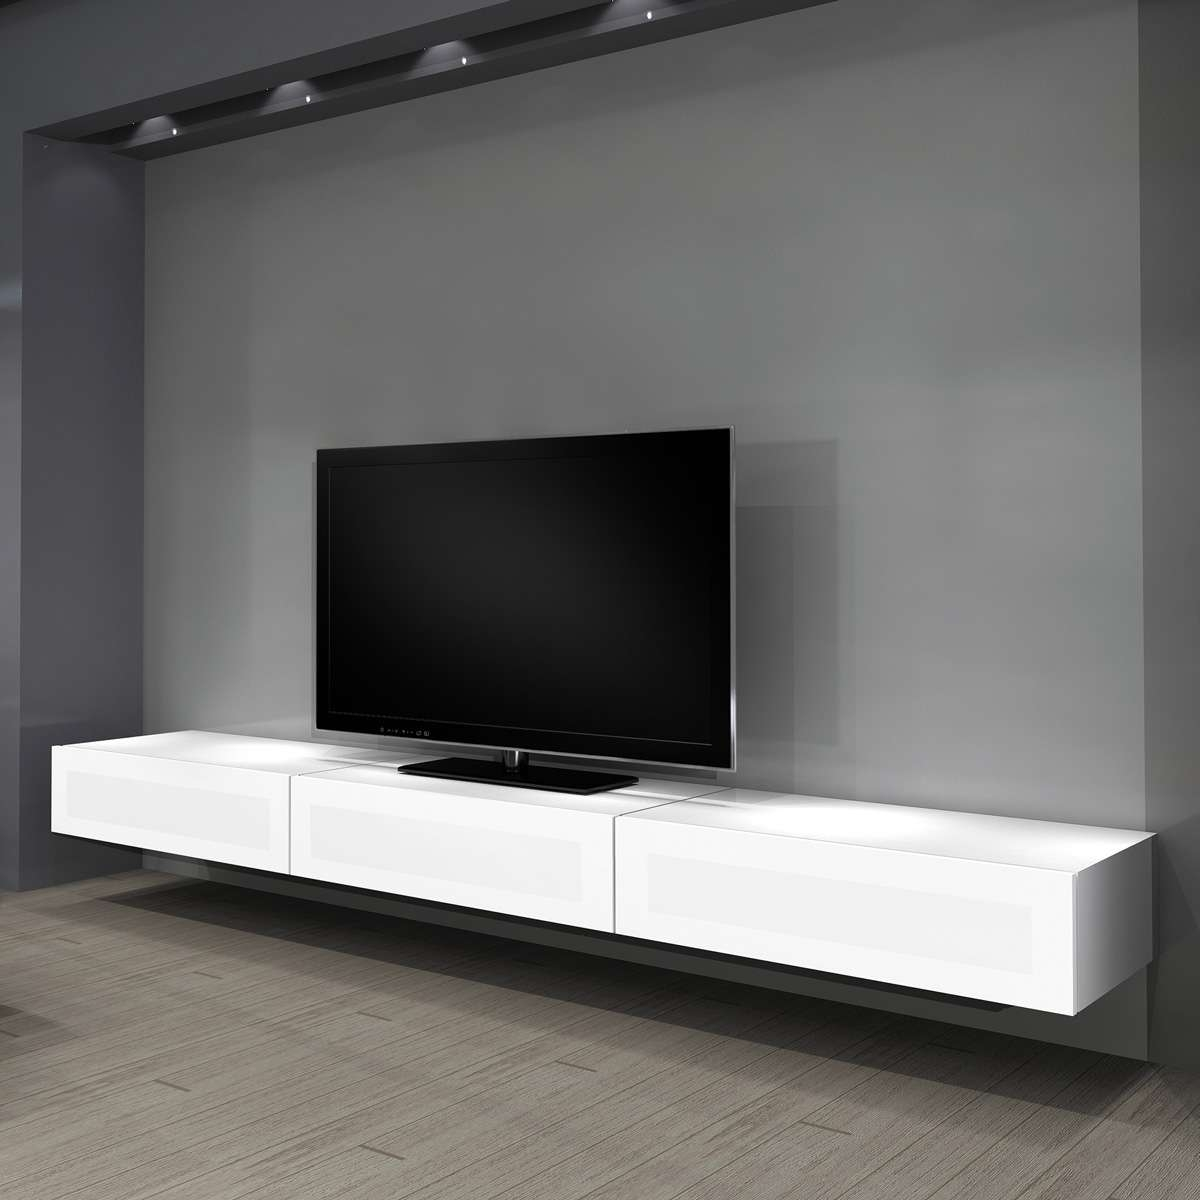 Floating Long White Wooden Cabinet With Tv On The Top Placed On With Regard To Long White Tv Cabinets (View 8 of 20)